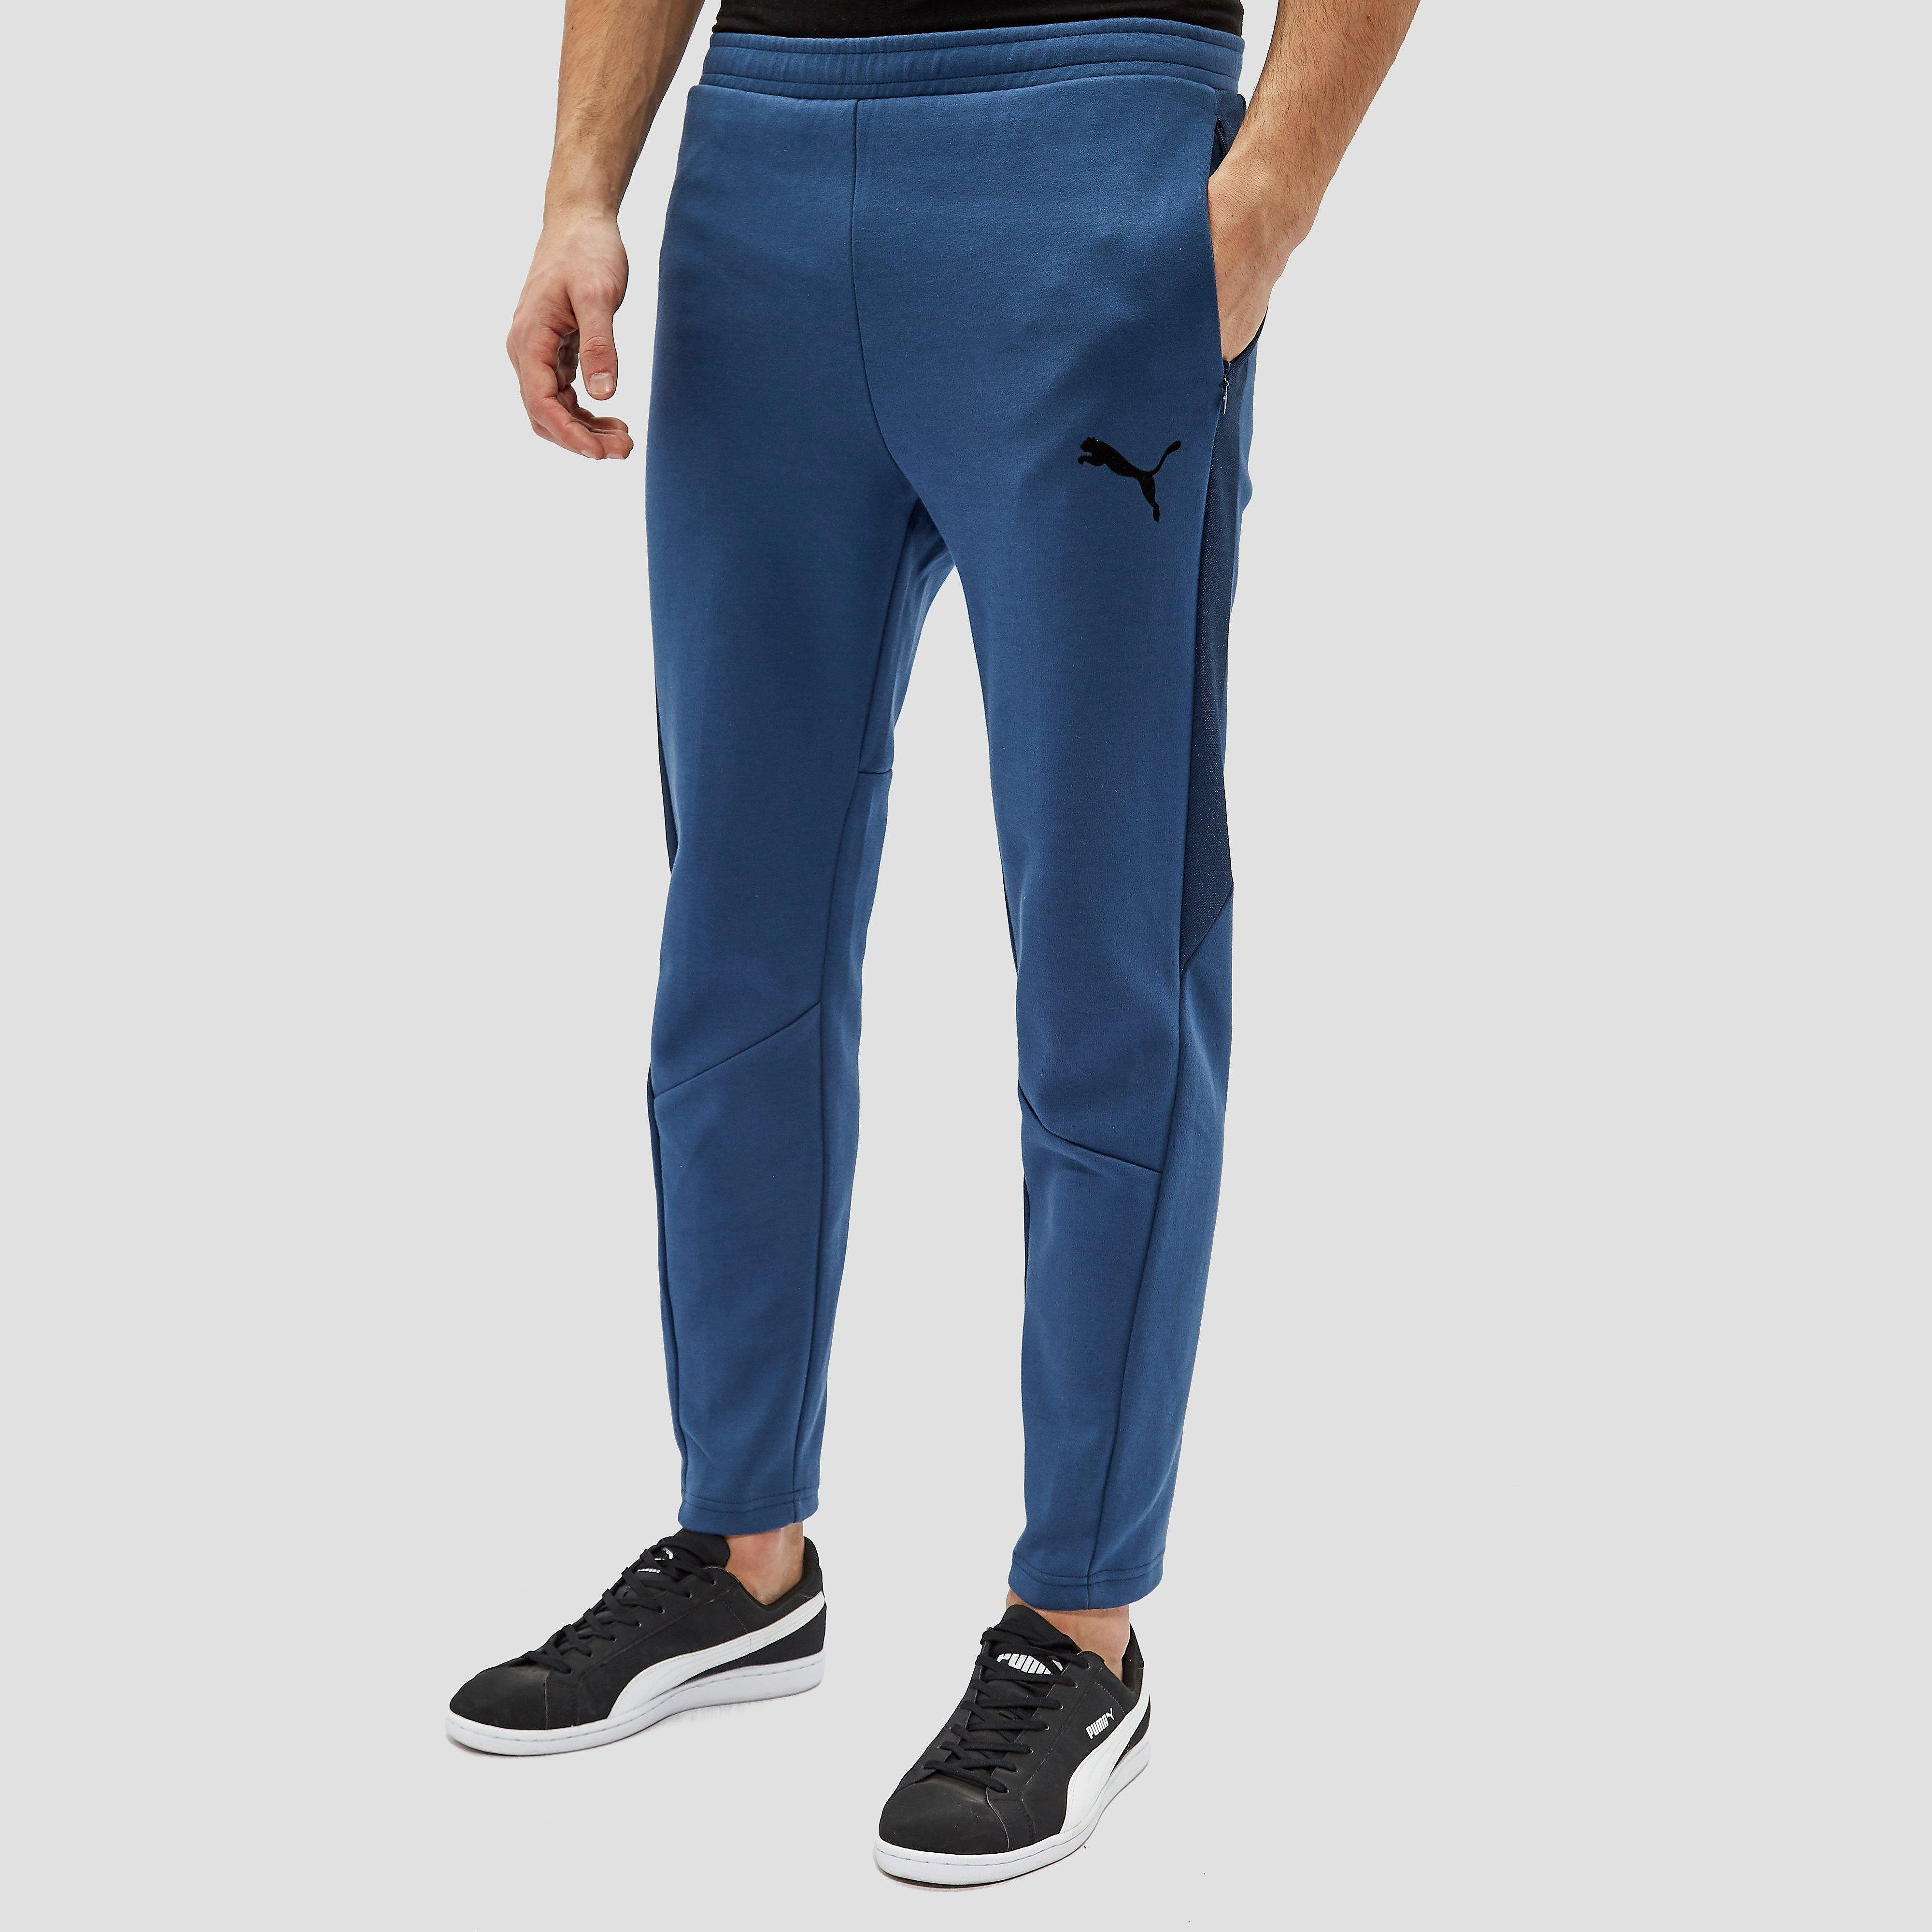 PUMA EVOSTRIPE MOVE JOGGINGBROEK BLAUW/WIT HEREN